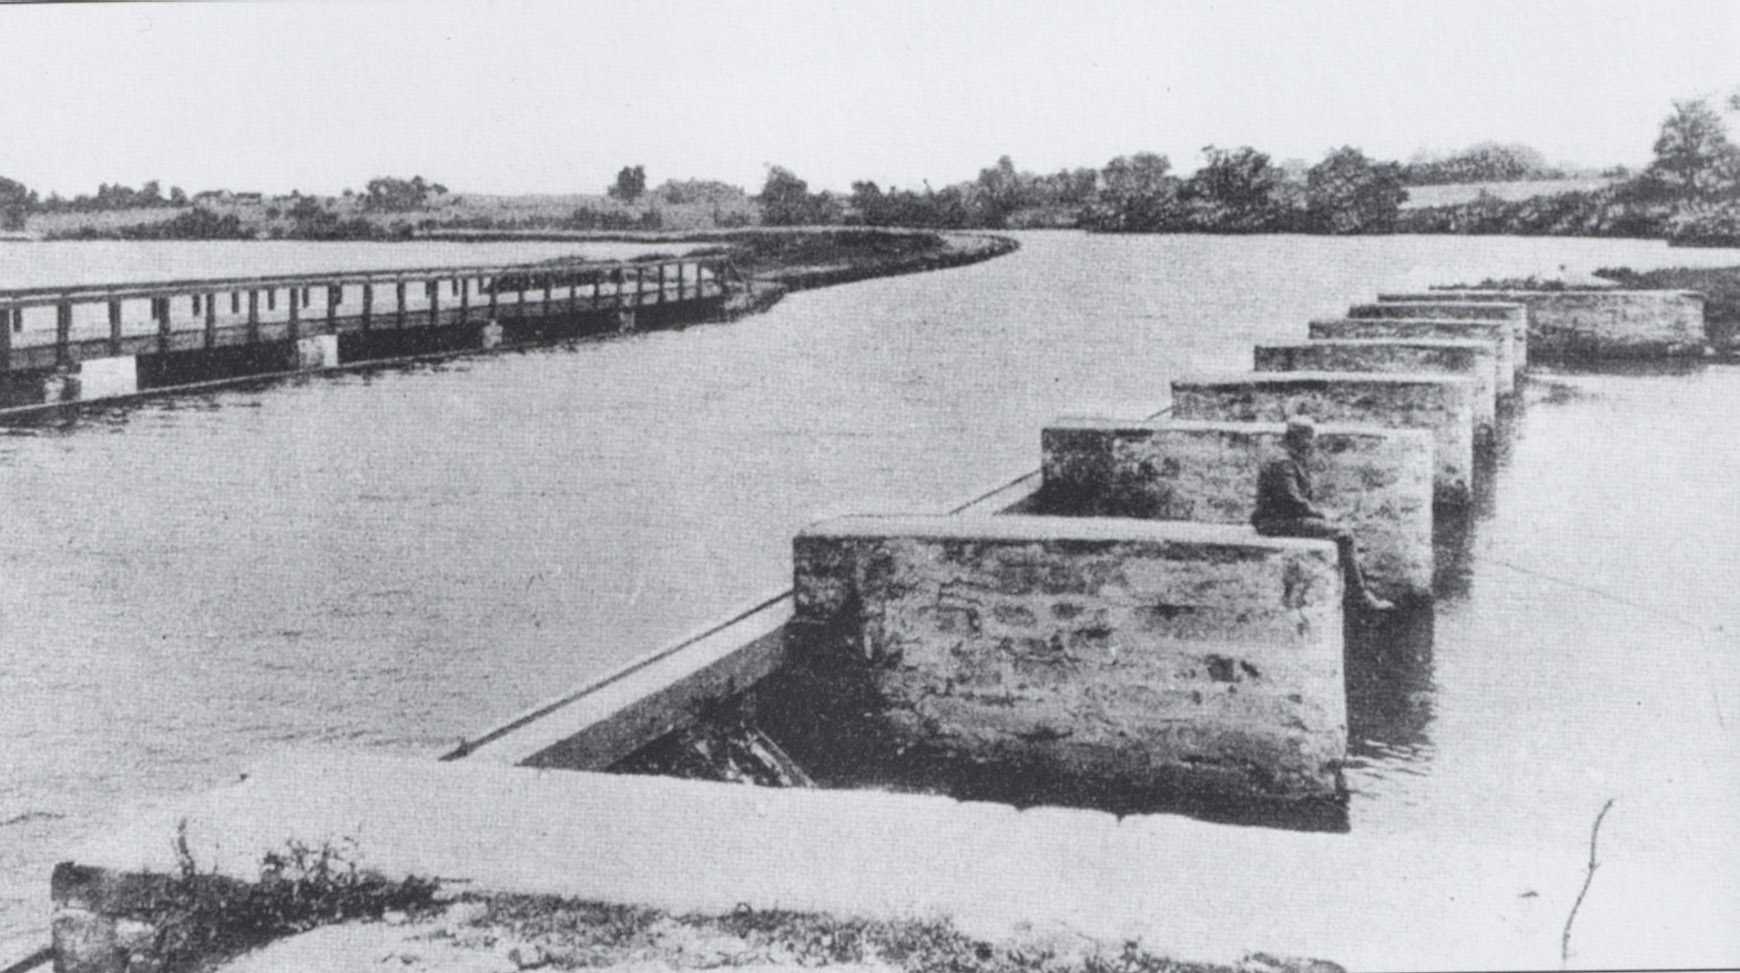 Prior to the creation of Lake Carnegie, an aqueduct was needed to convey the Delaware and Raritan Canal over the Millstone River.  When Lake Carnegie was completed in 1906, the lake rose to within a few feet of the canal.  The wooden walkway on the left was built to allow mules and their drivers to cross the aqueduct.